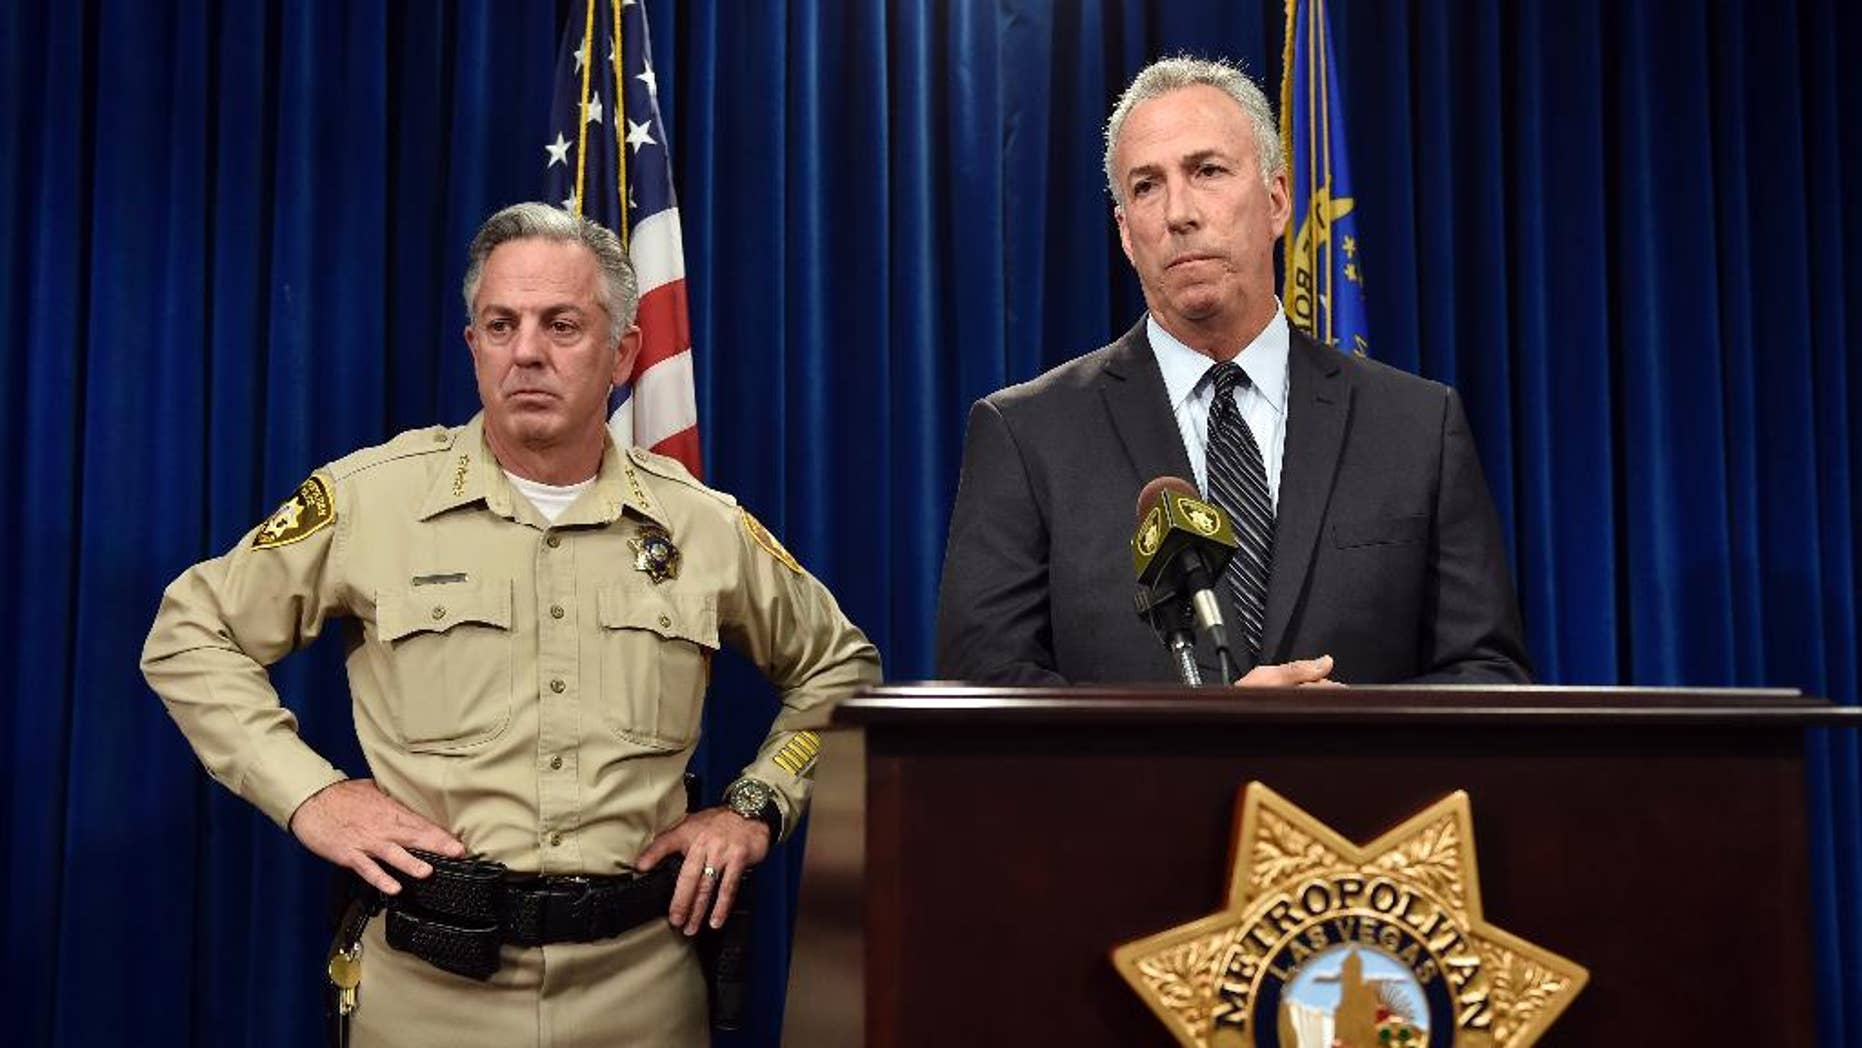 Clark County Sheriff Joe Lombardo, left, and Clark County District Attorney Steve Wolfson attend at a news conference, Monday, Dec. 21, 2015, in Las Vegas. The two officials spoke about the car driven by suspect Lakeisha N. Holloway, of Oregon, who police said smashed into crowds of pedestrians on the Las Vegas Strip on Sunday night, killing one person and injuring dozens. (AP Photo/David Becker)